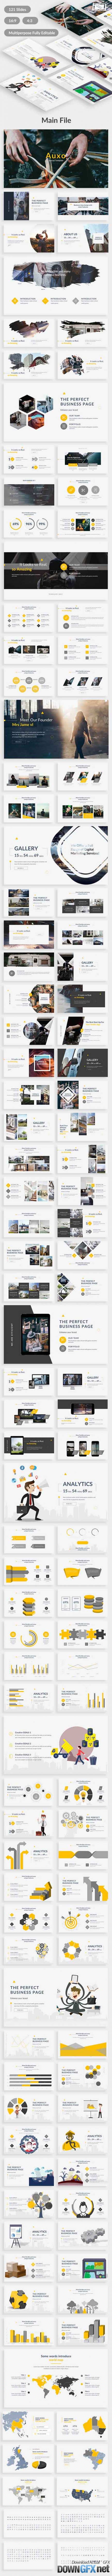 Auxo Premium Multipurpose Powerpoint Template 20470187